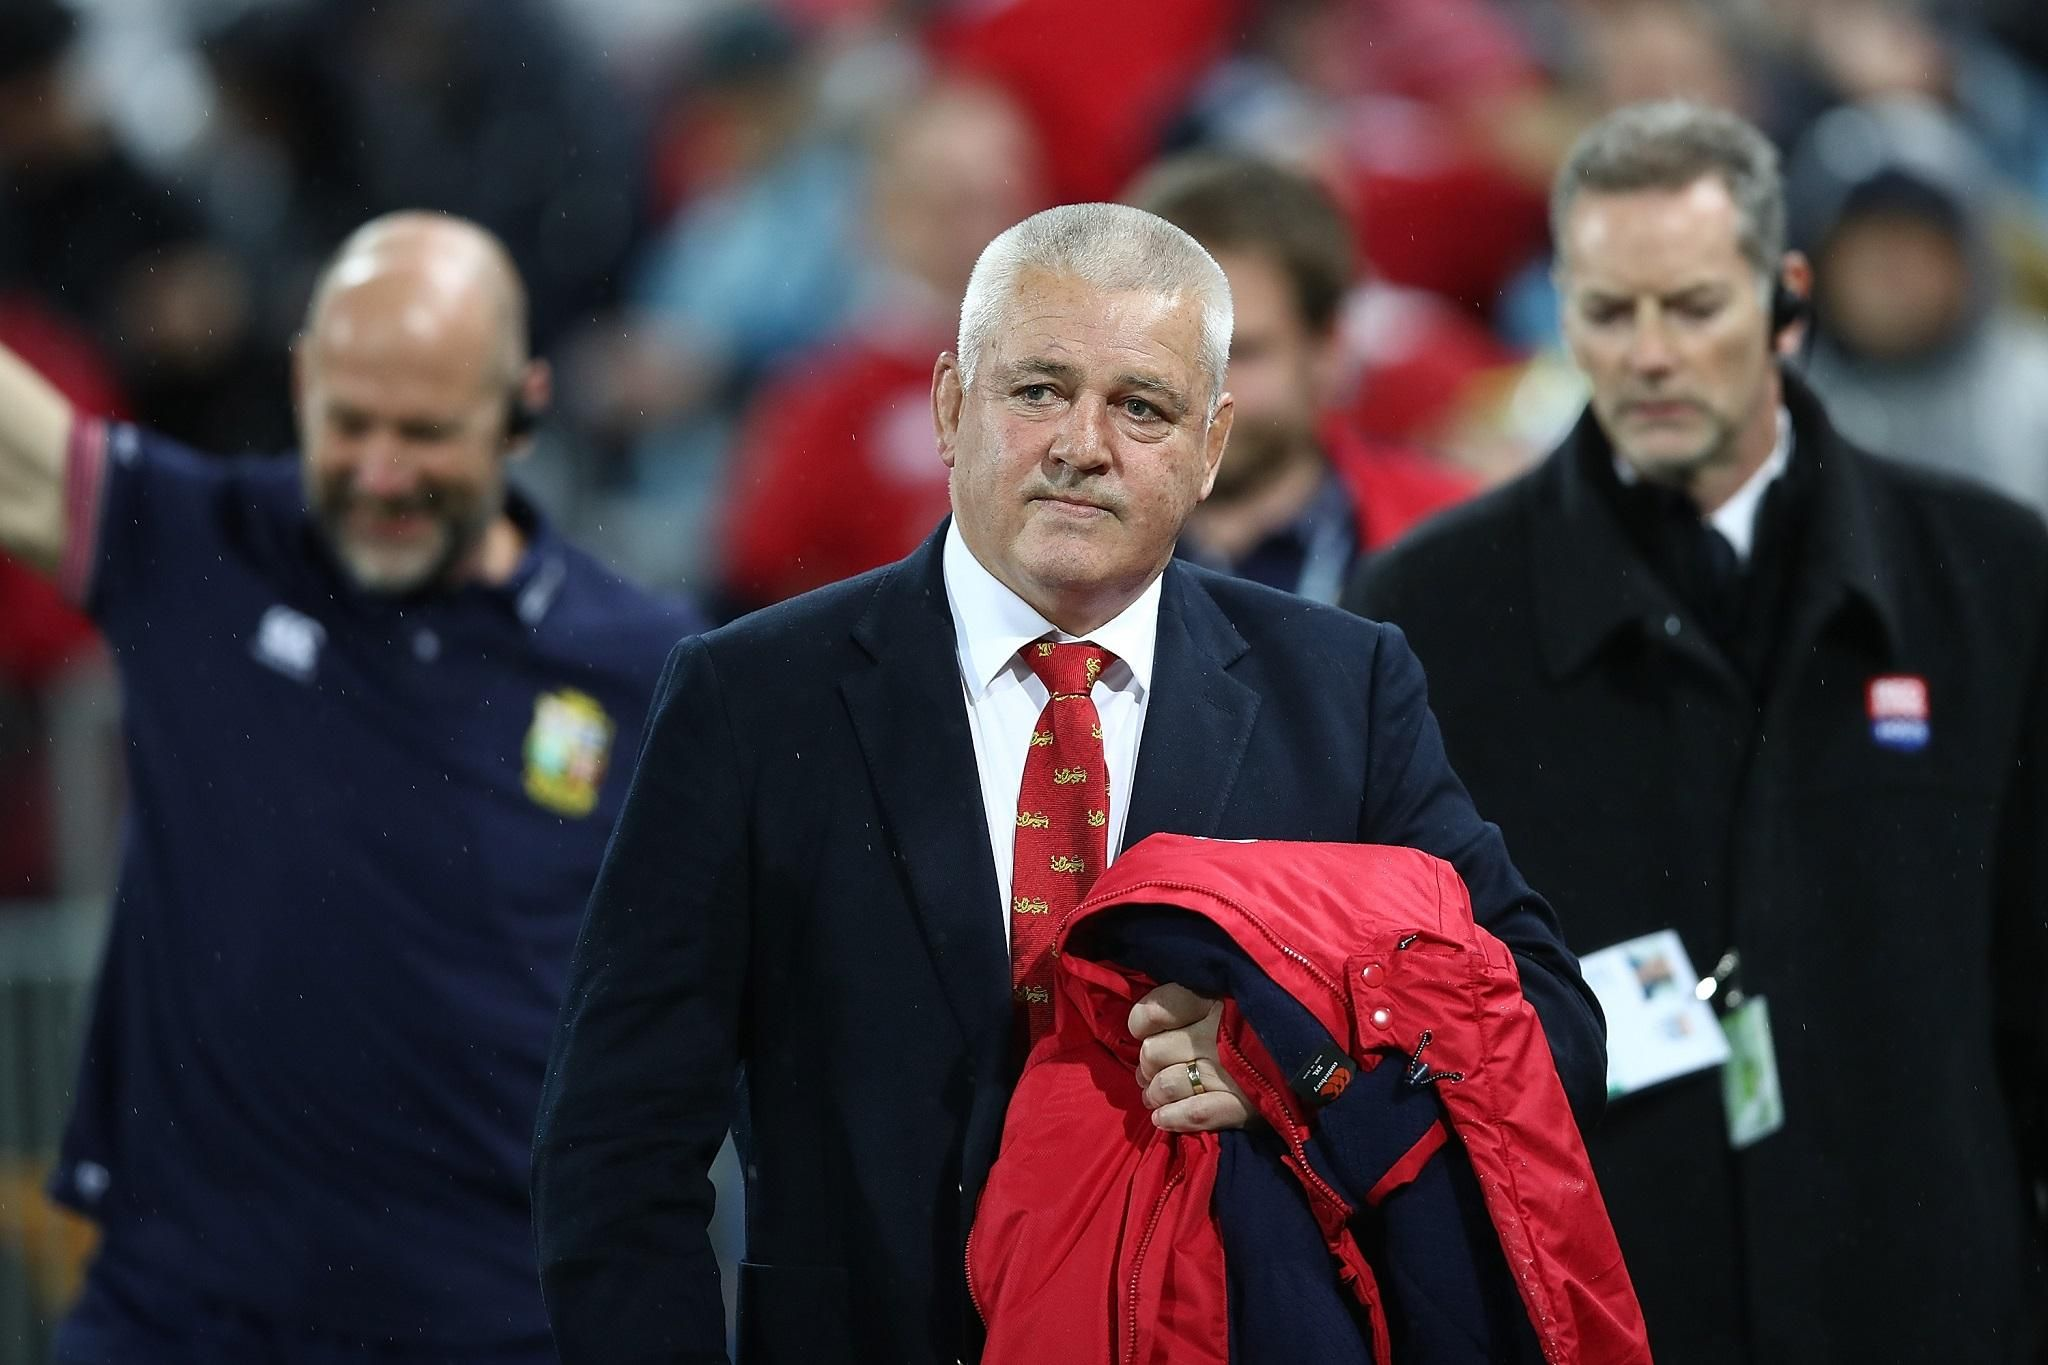 British and Irish Lions 2017: Warren Gatland uses second Test victory to hit back at critics for 'personal attacks'